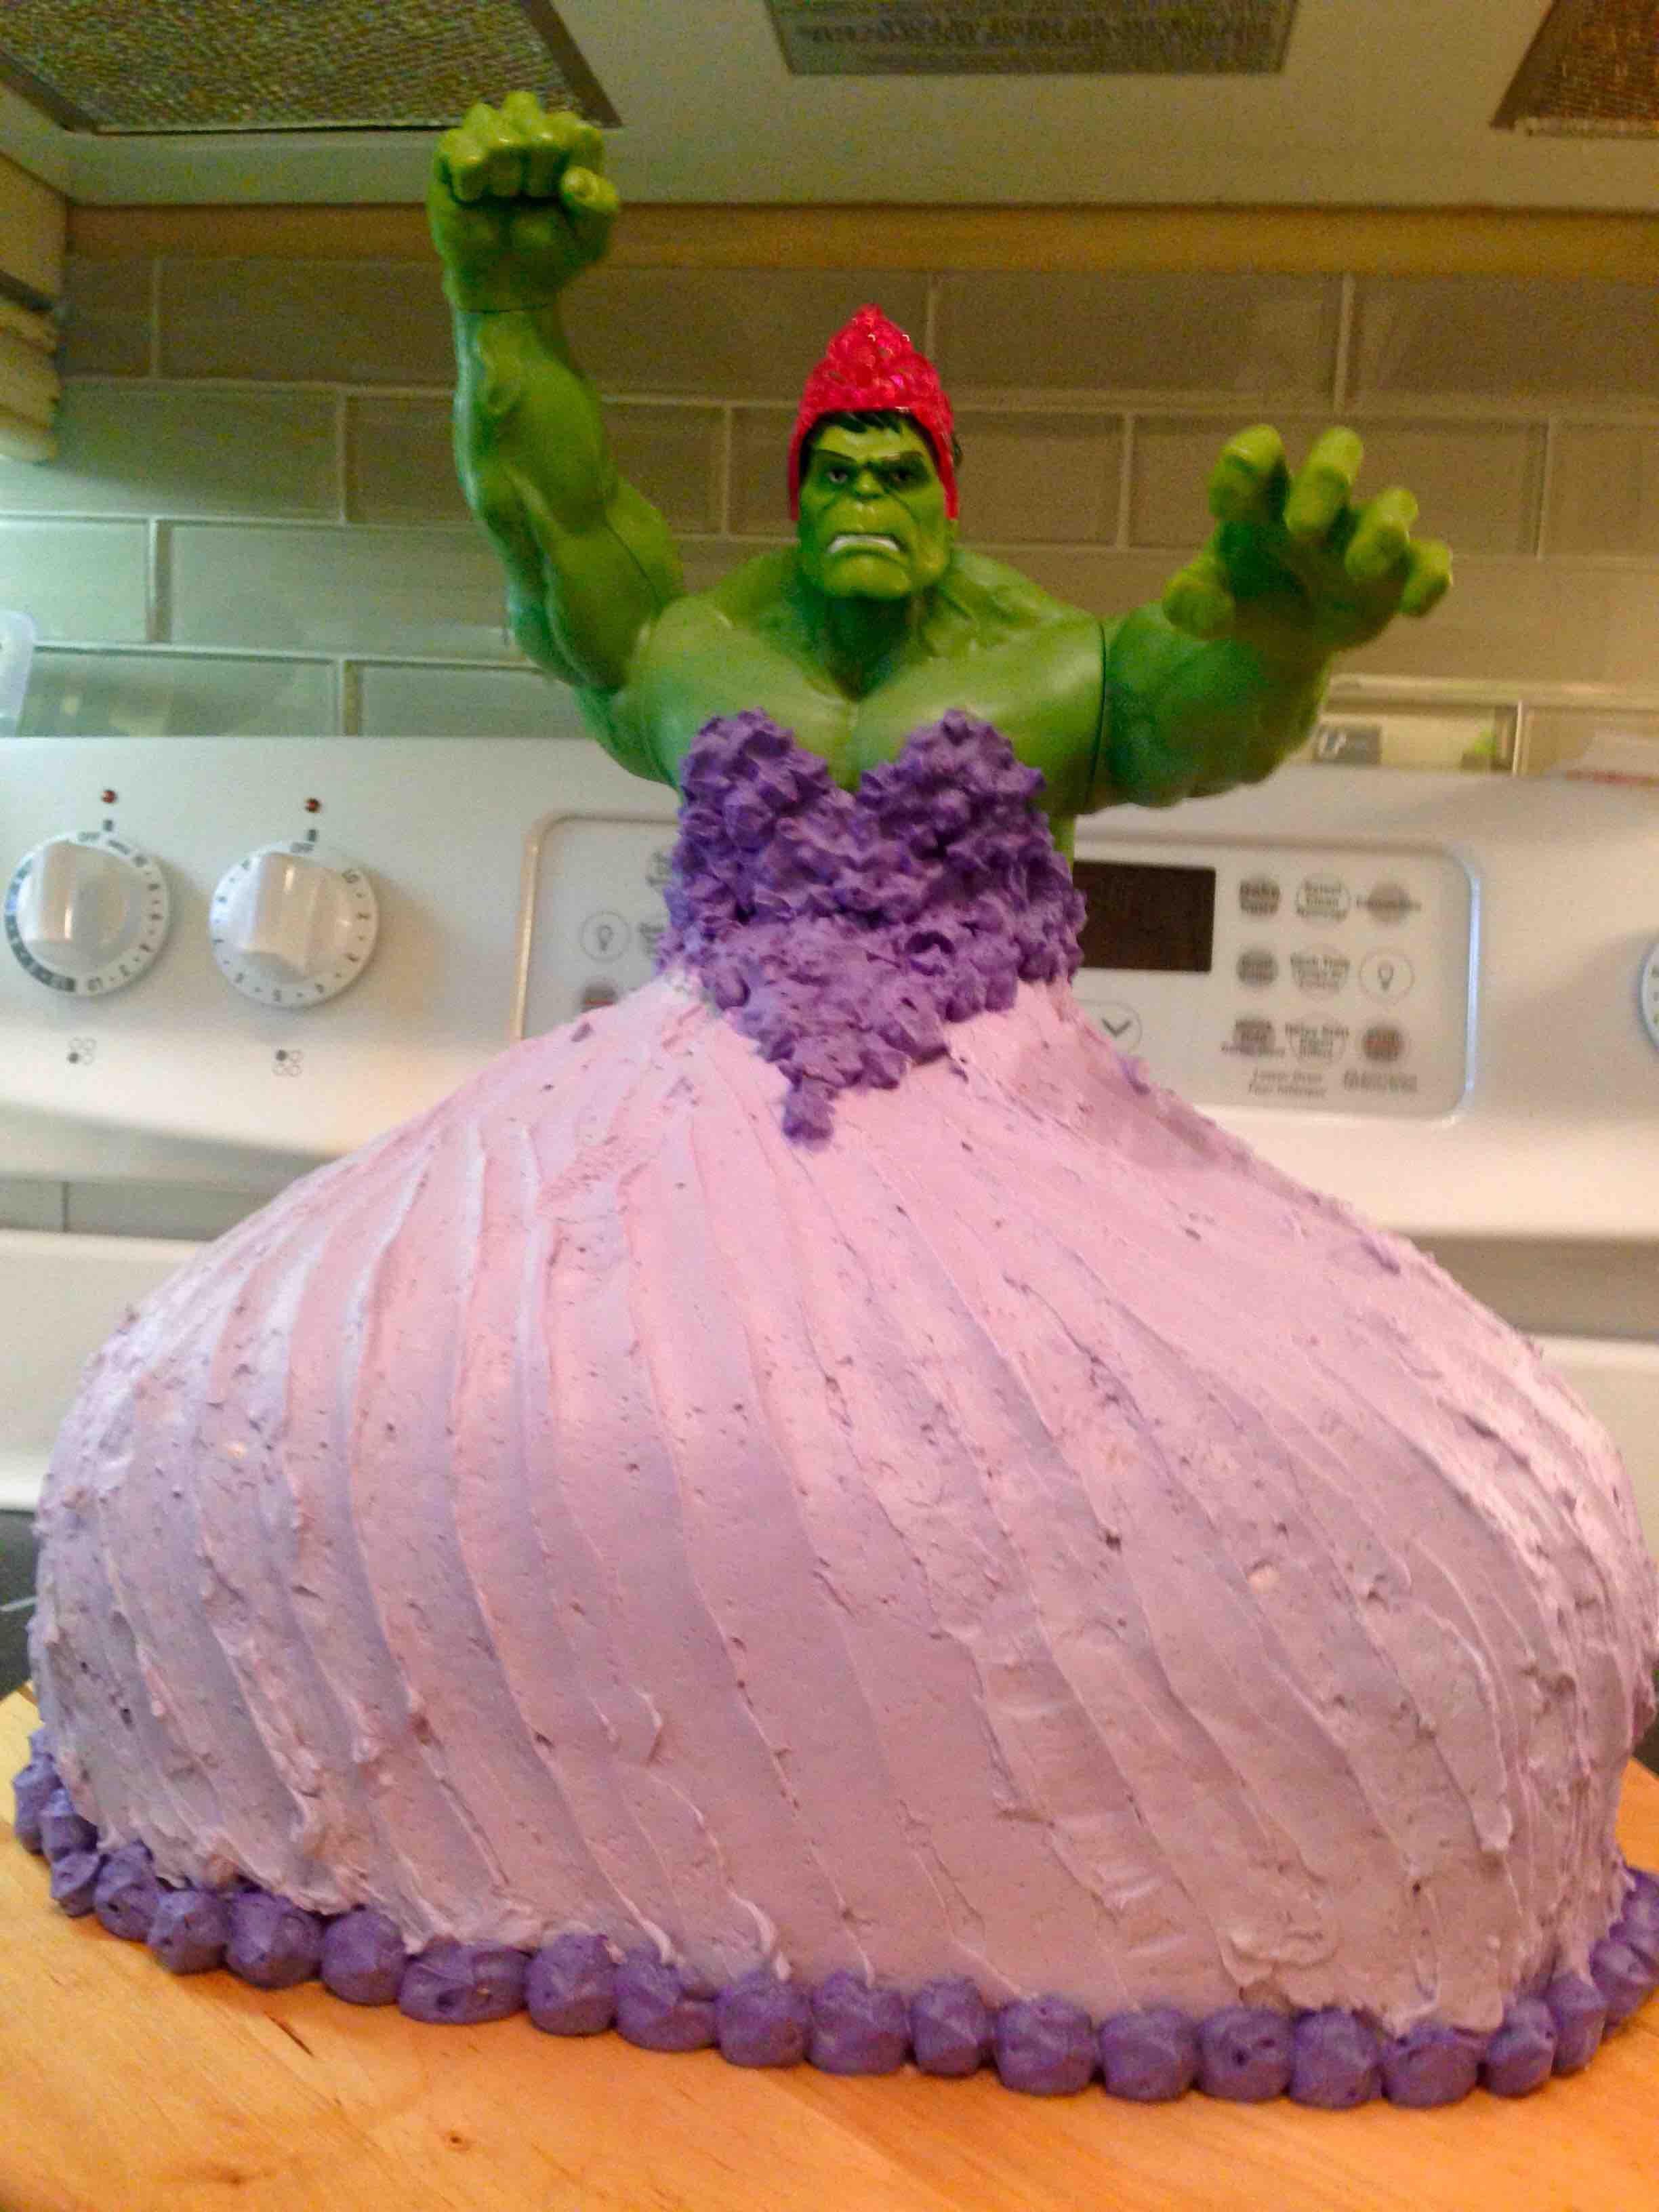 Awesome Birthday Cakes Awesome Hulk Princess Cake Smashes Gender Norms